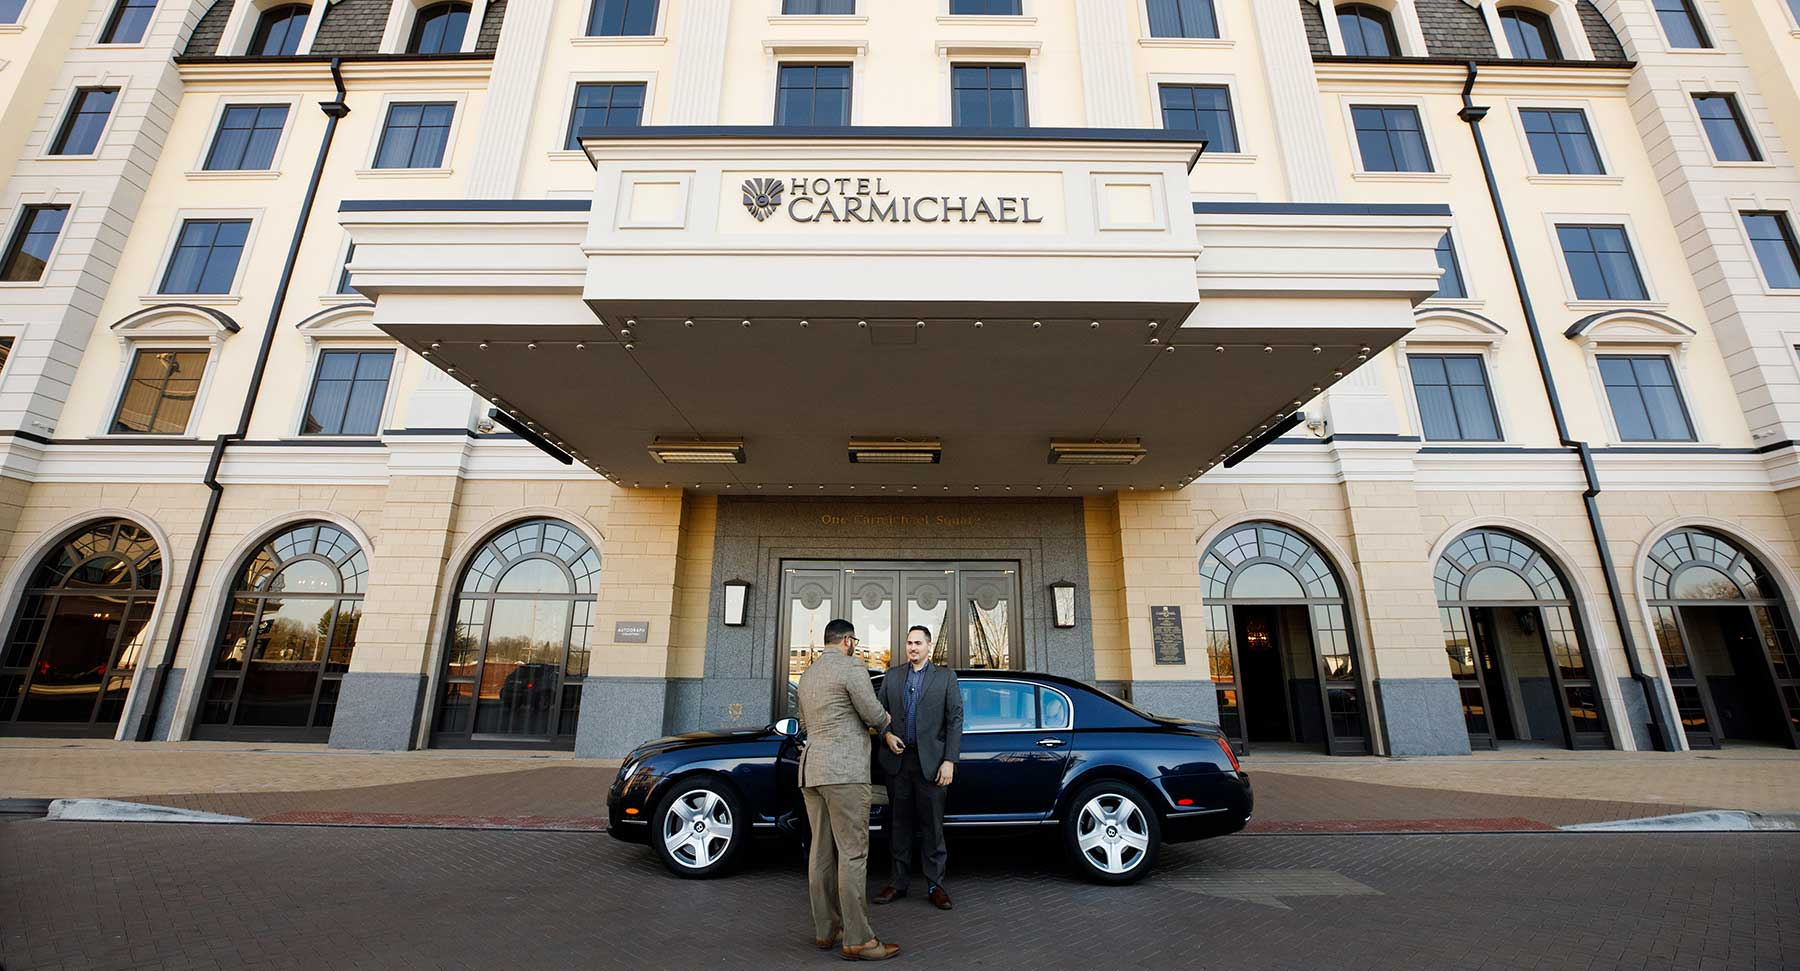 two men shaking hands outside of car in front of hotel carmichael